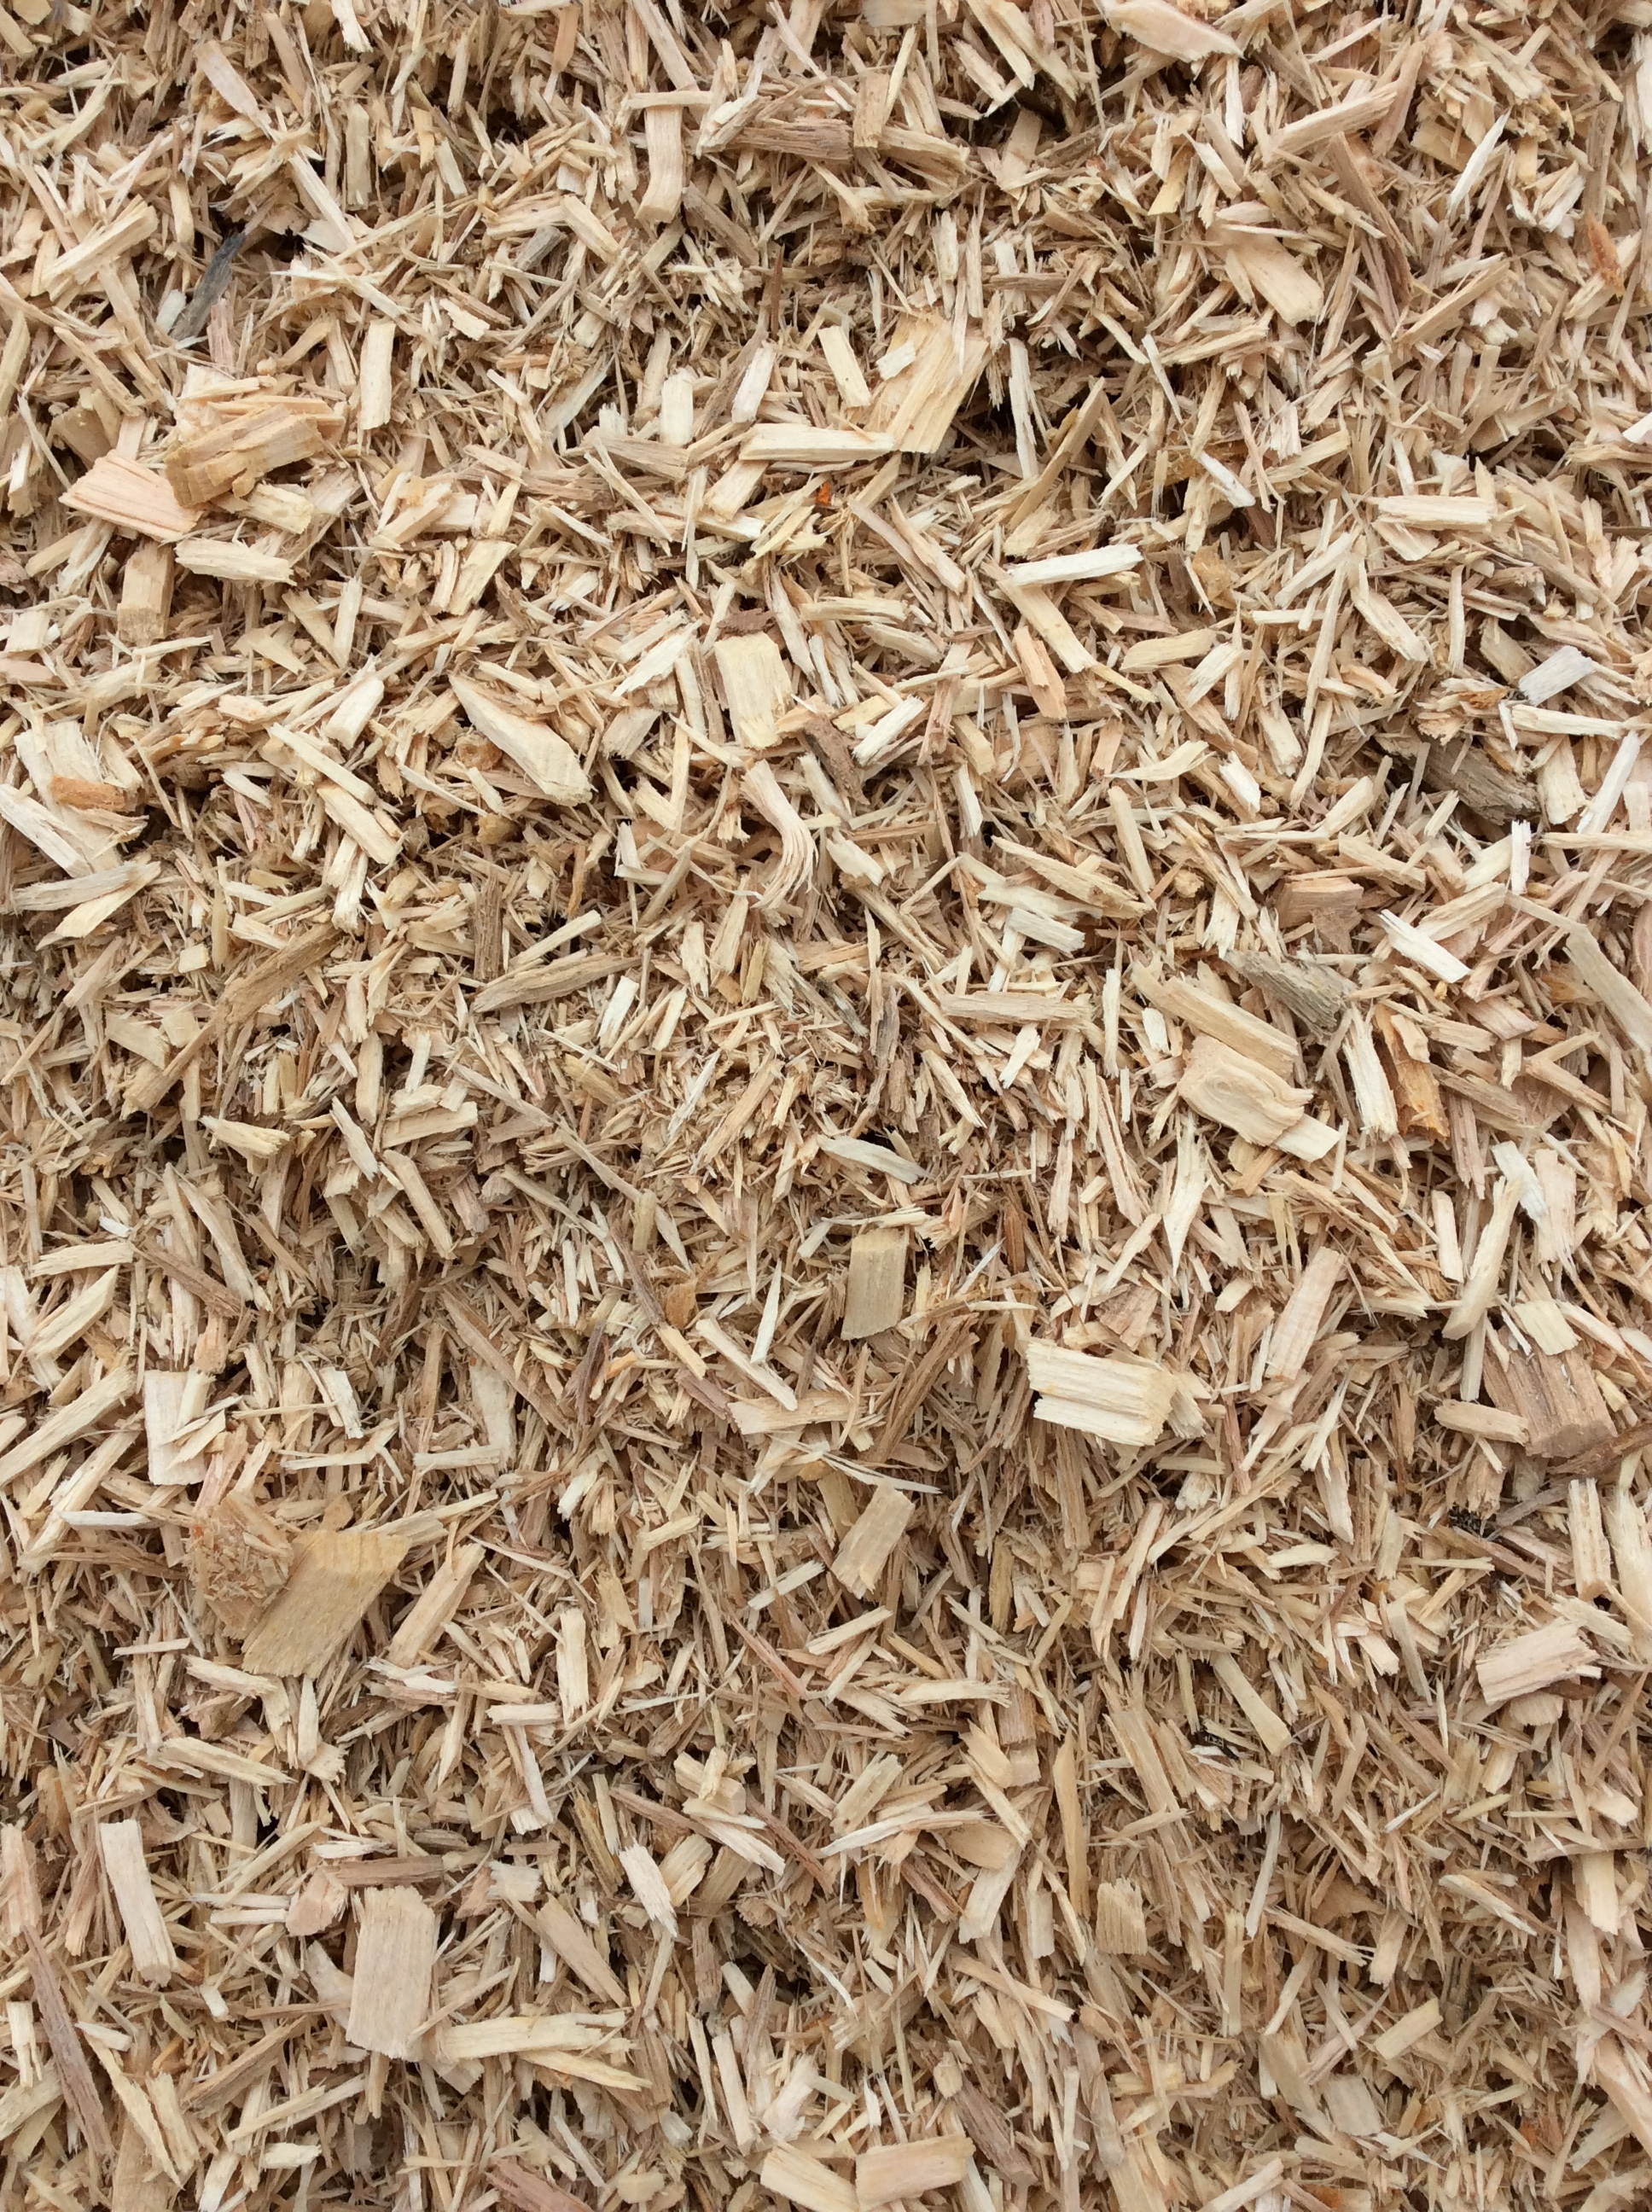 Play Ground Cover: $18.00 YardAn Organic productSafe & Metal Free Play Ground Mulch suitable for Homes or Schools -